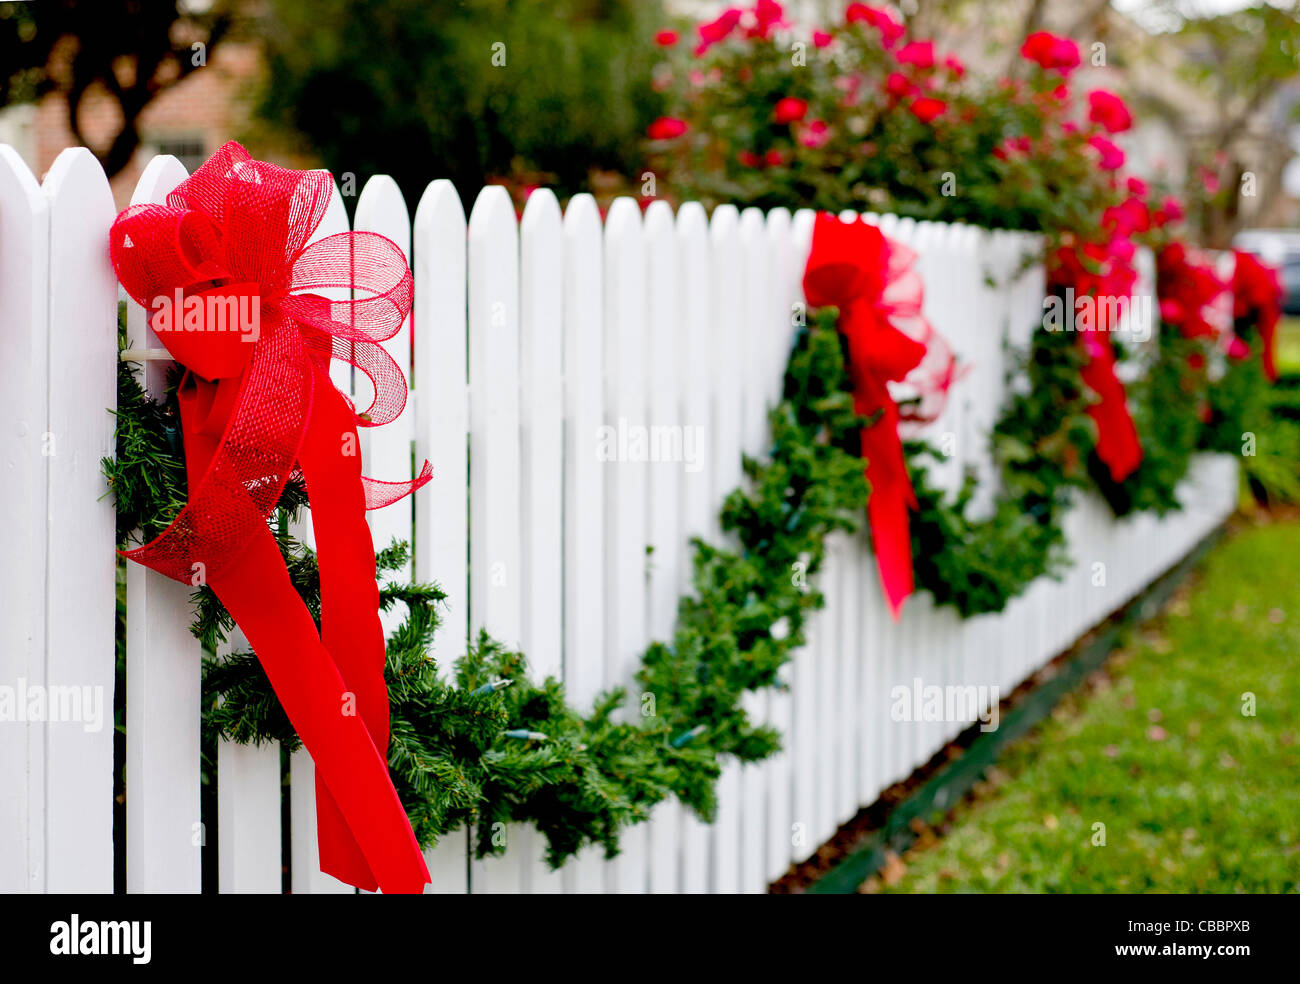 Garland and ribbons hang on a white picket fence for the holidays. - Stock Image